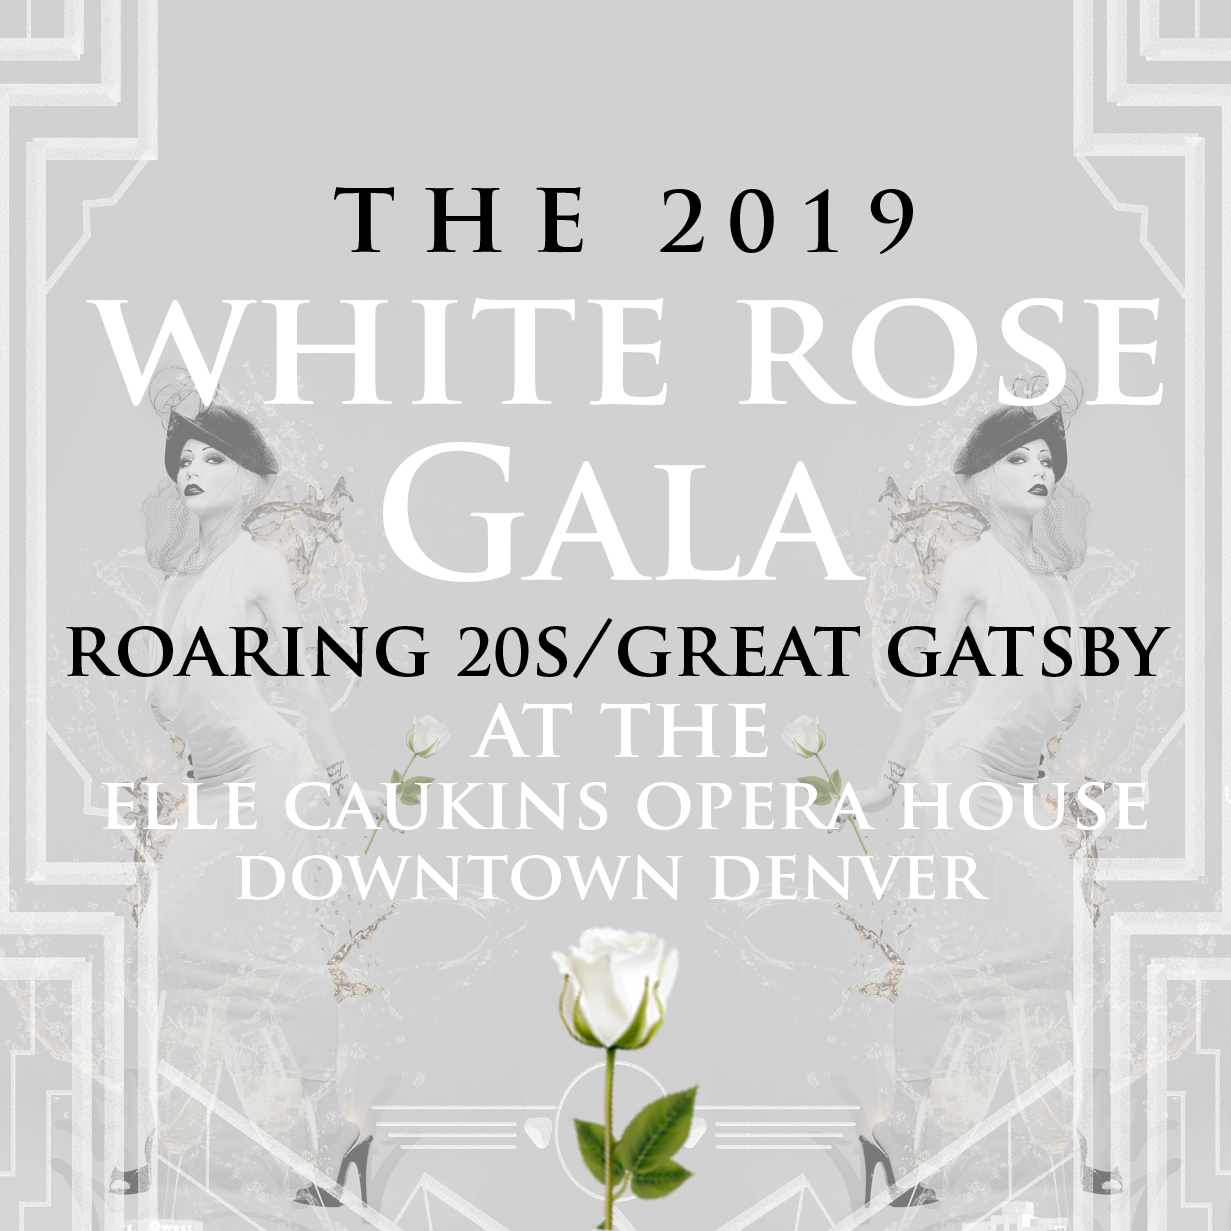 Grizzly Rose Concert December 2020 Calendar NYE   White Rose Gala 17th Annual